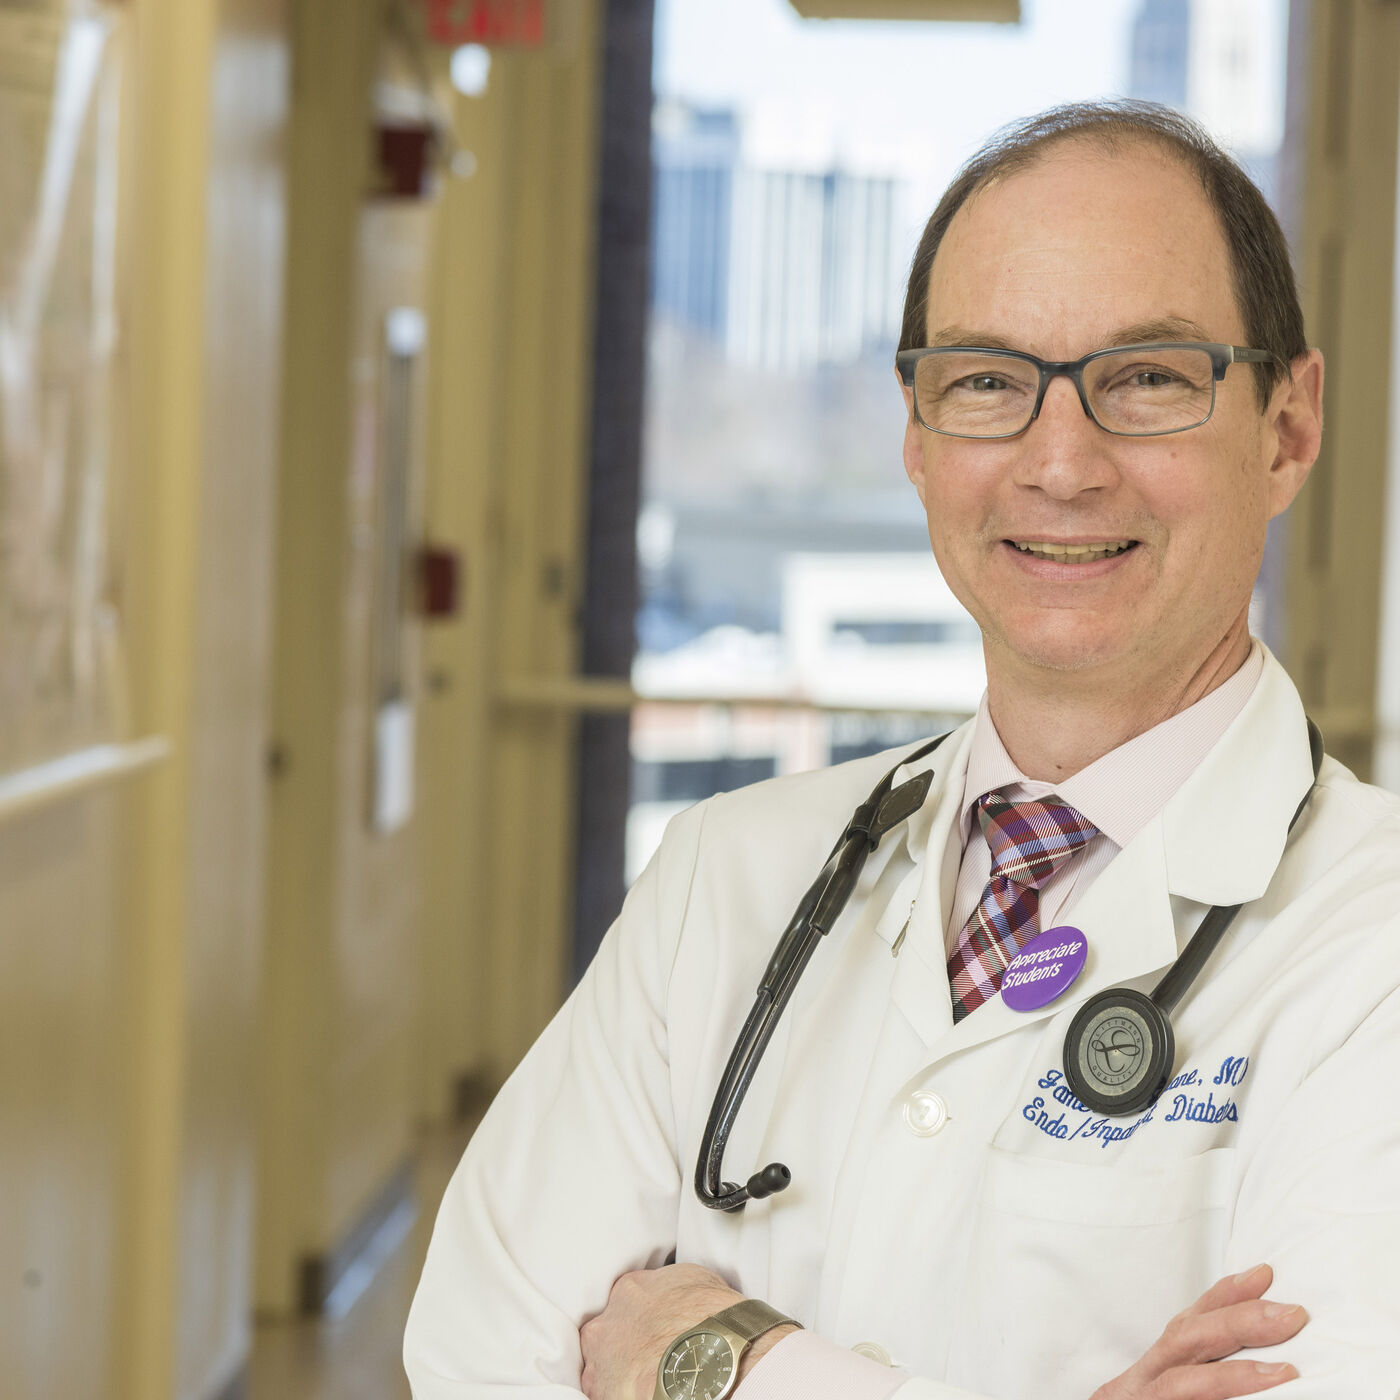 Endocrinology and Quality Improvement with James Desemone, MD, FACP, CPE